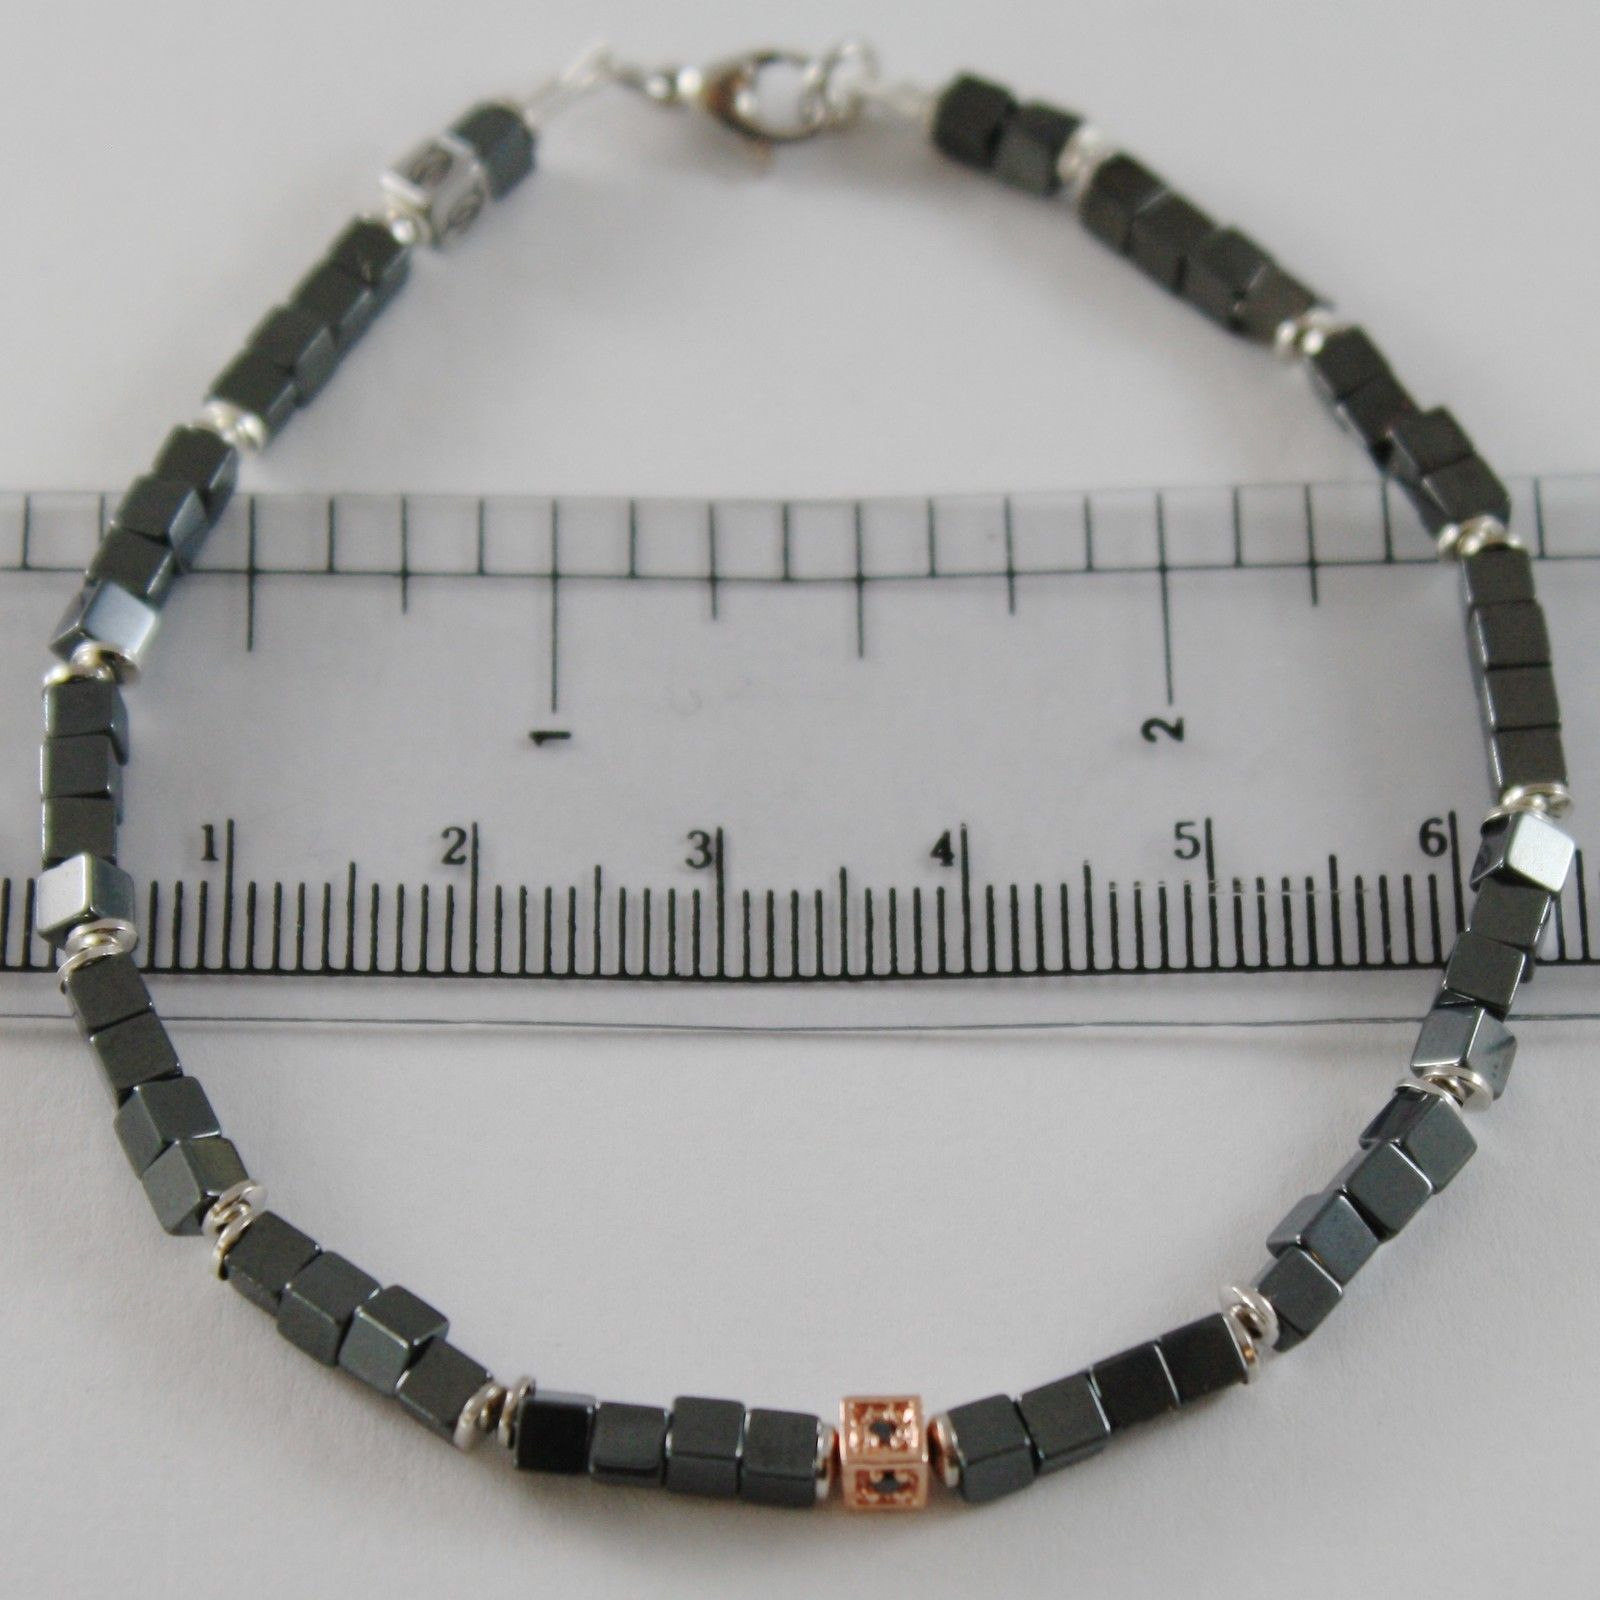 BRACELET GIADAN 925 SILVER HEMATITE LUCID AND 4 DIAMONDS BLACK MADE IN ITALY